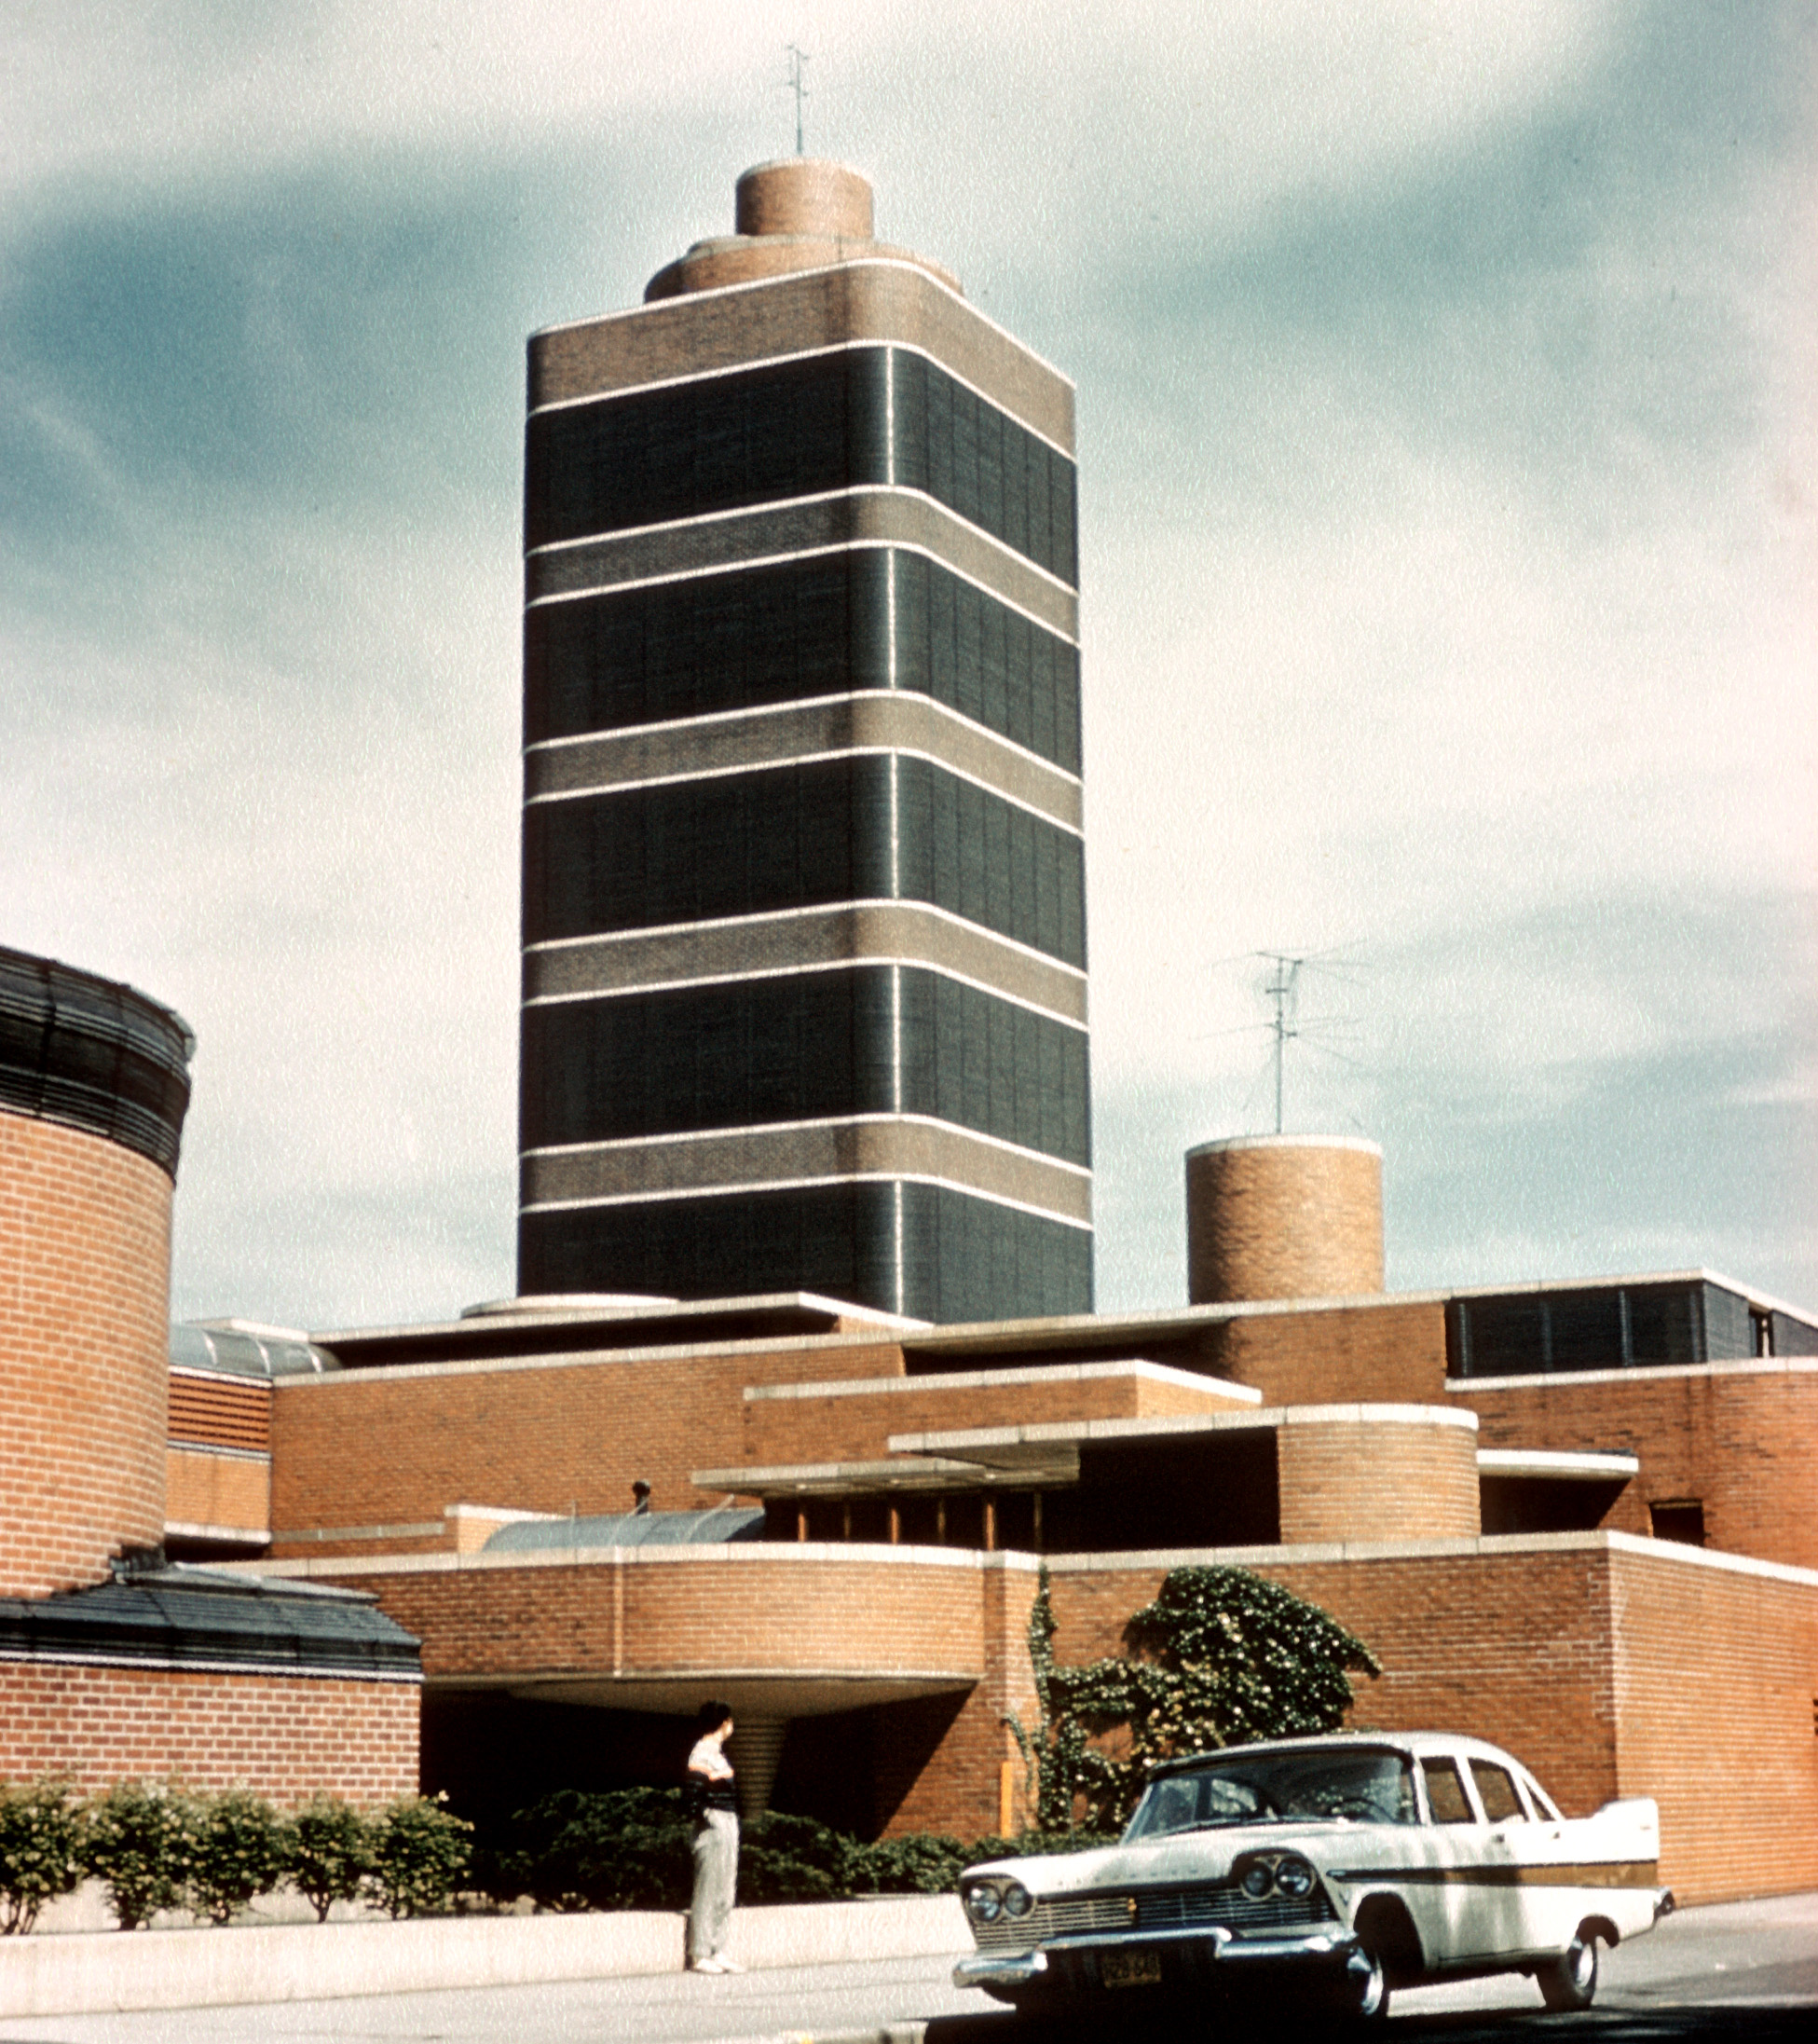 Johnson wax building